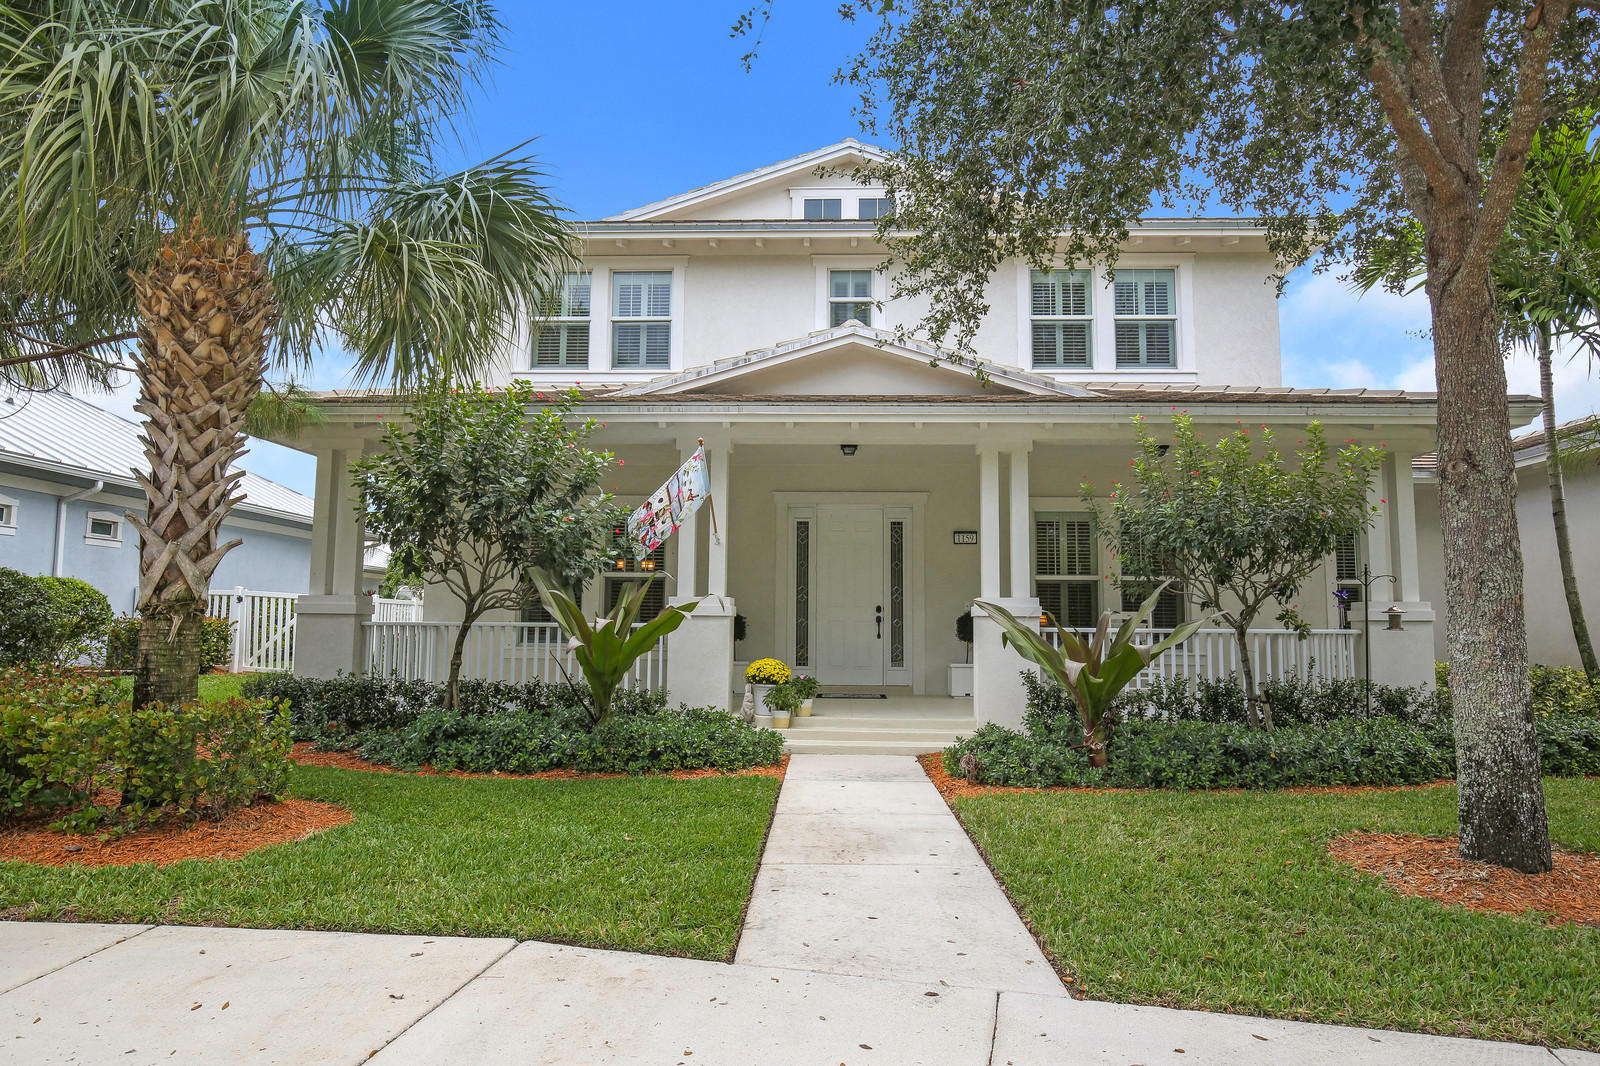 New Home for sale at 1159 Frederick Small Road in Jupiter